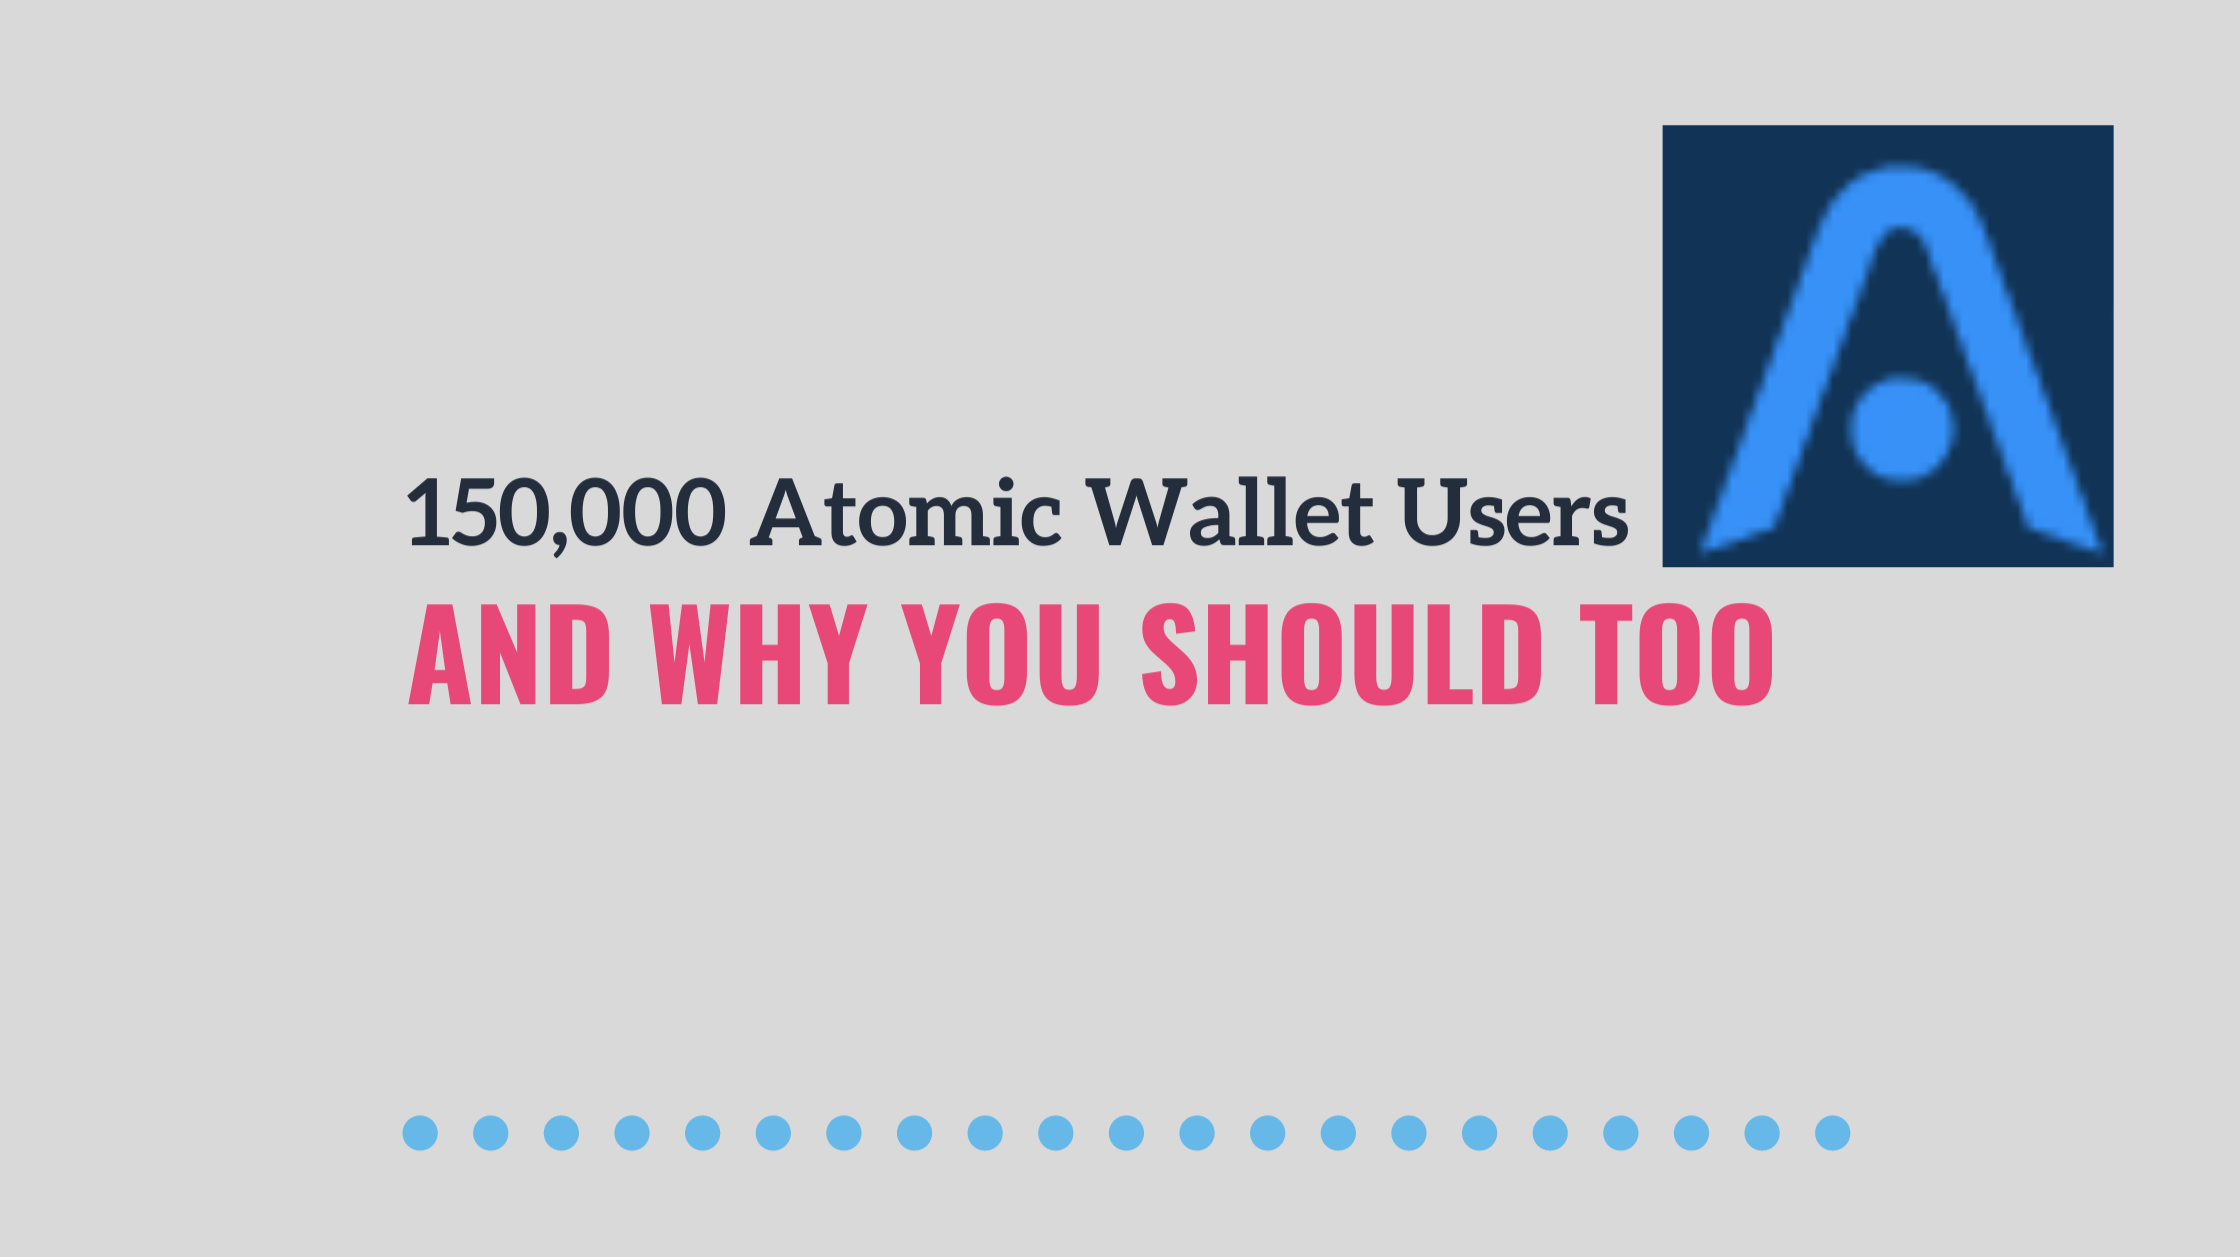 150,000 Atomic Wallet Users and Why You Should Too